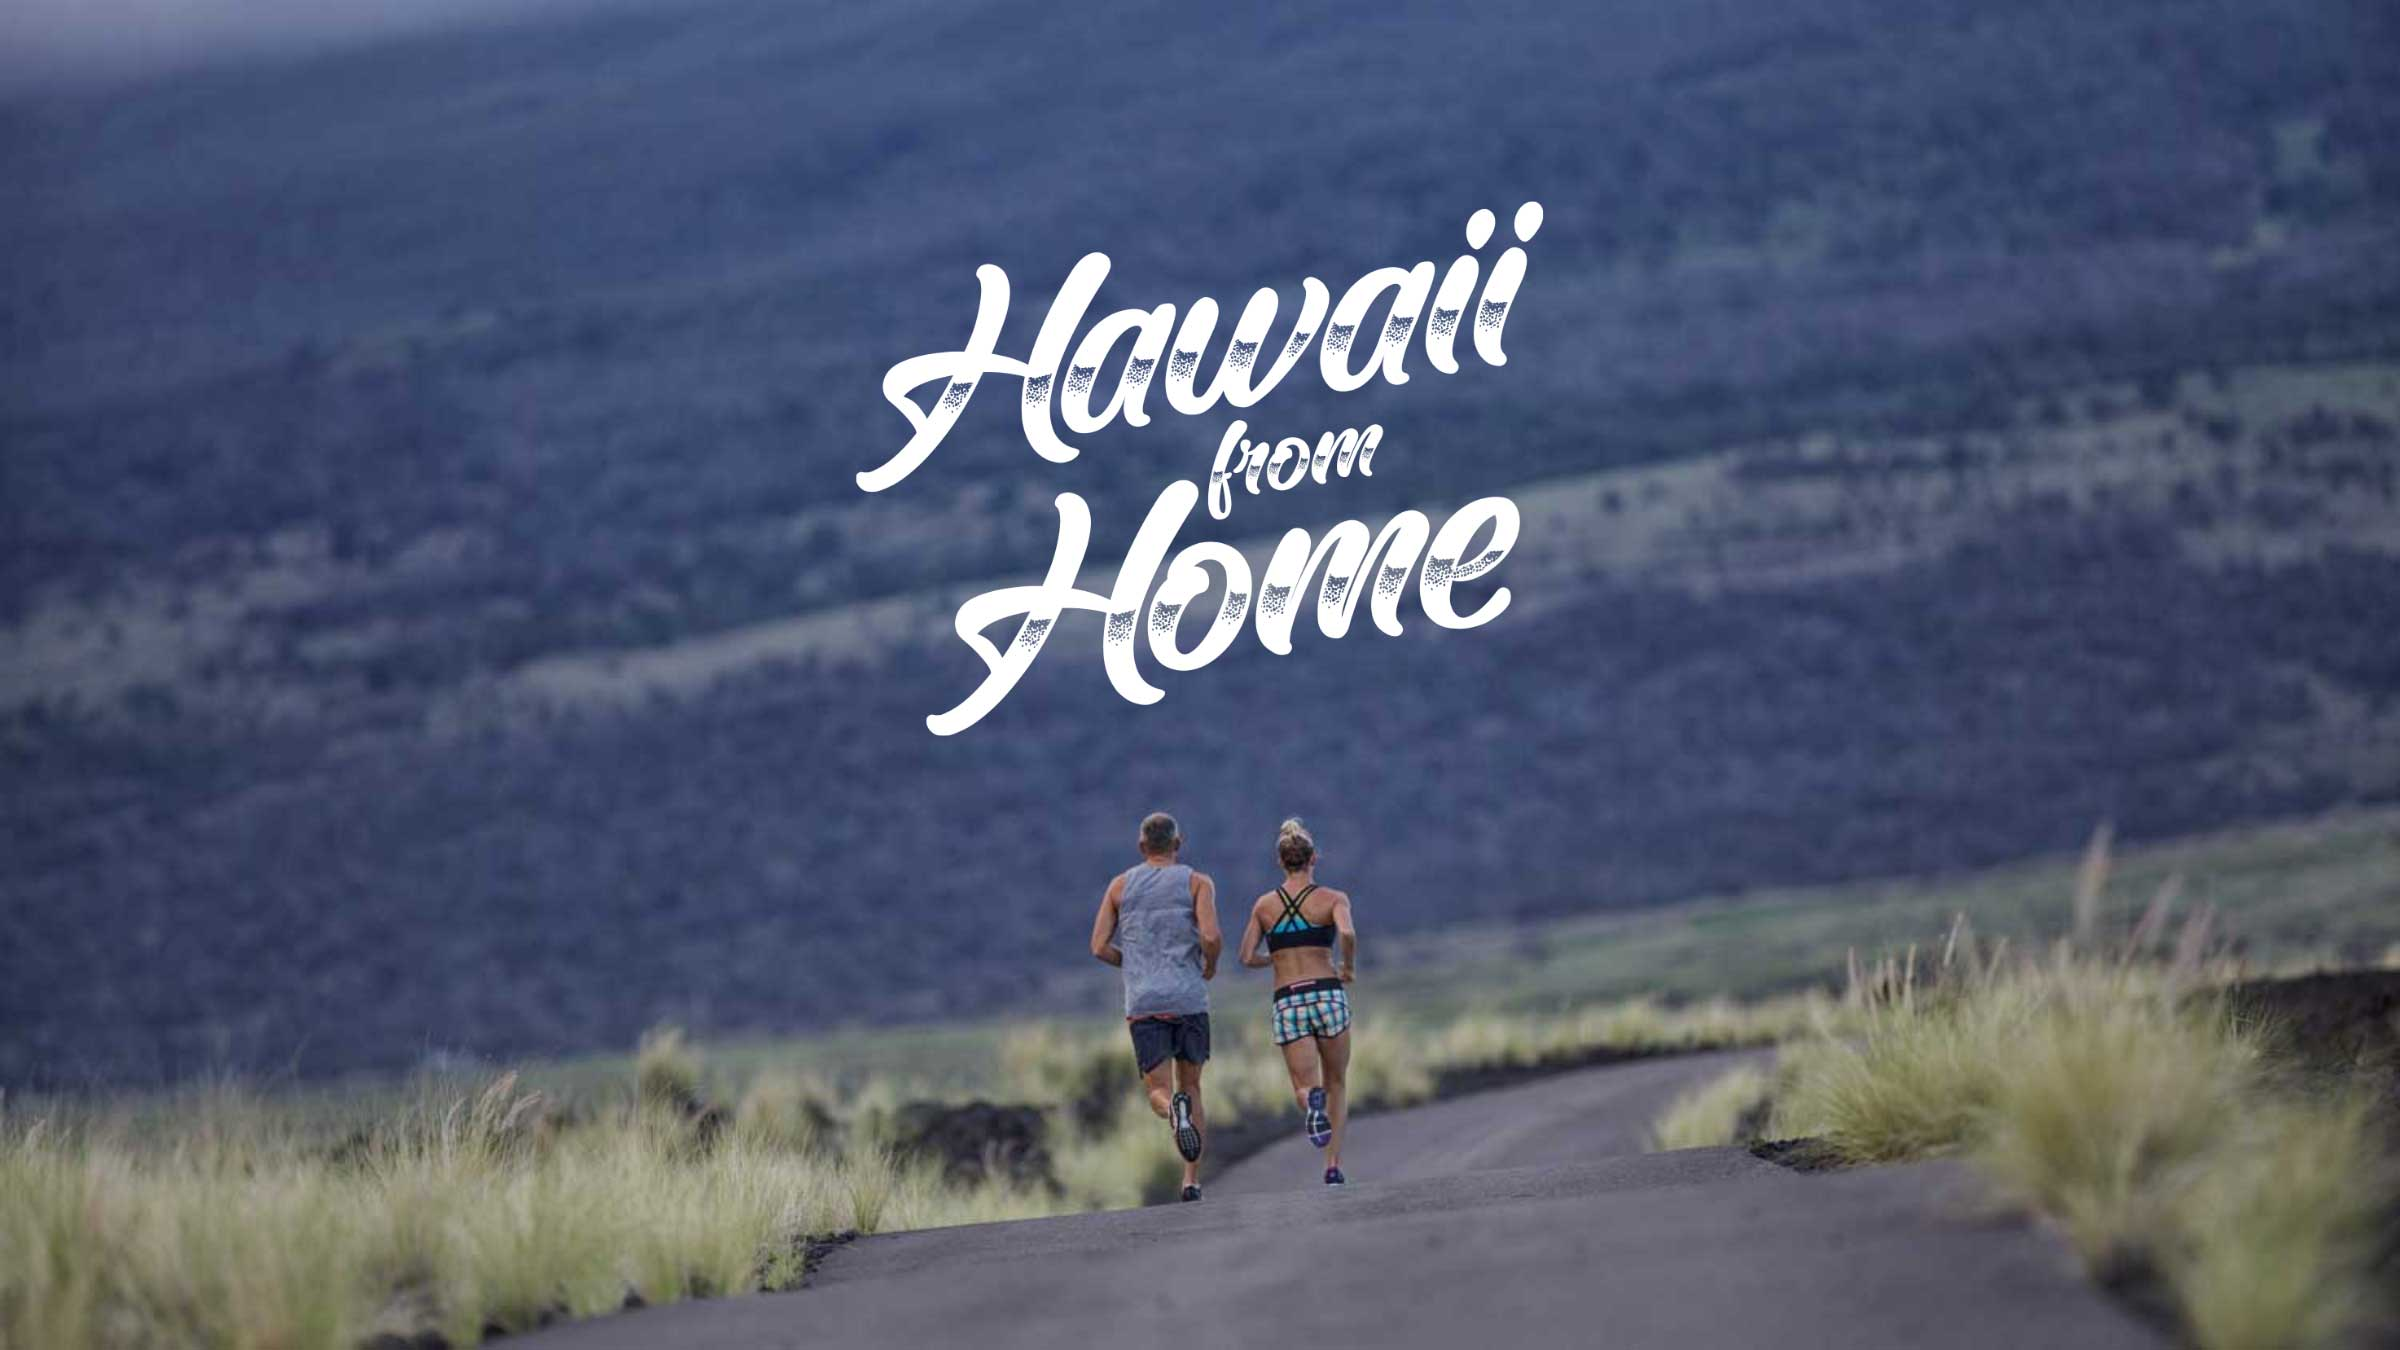 Get Ready For Hawaii From Home With These Weekly Workouts – Triathlete